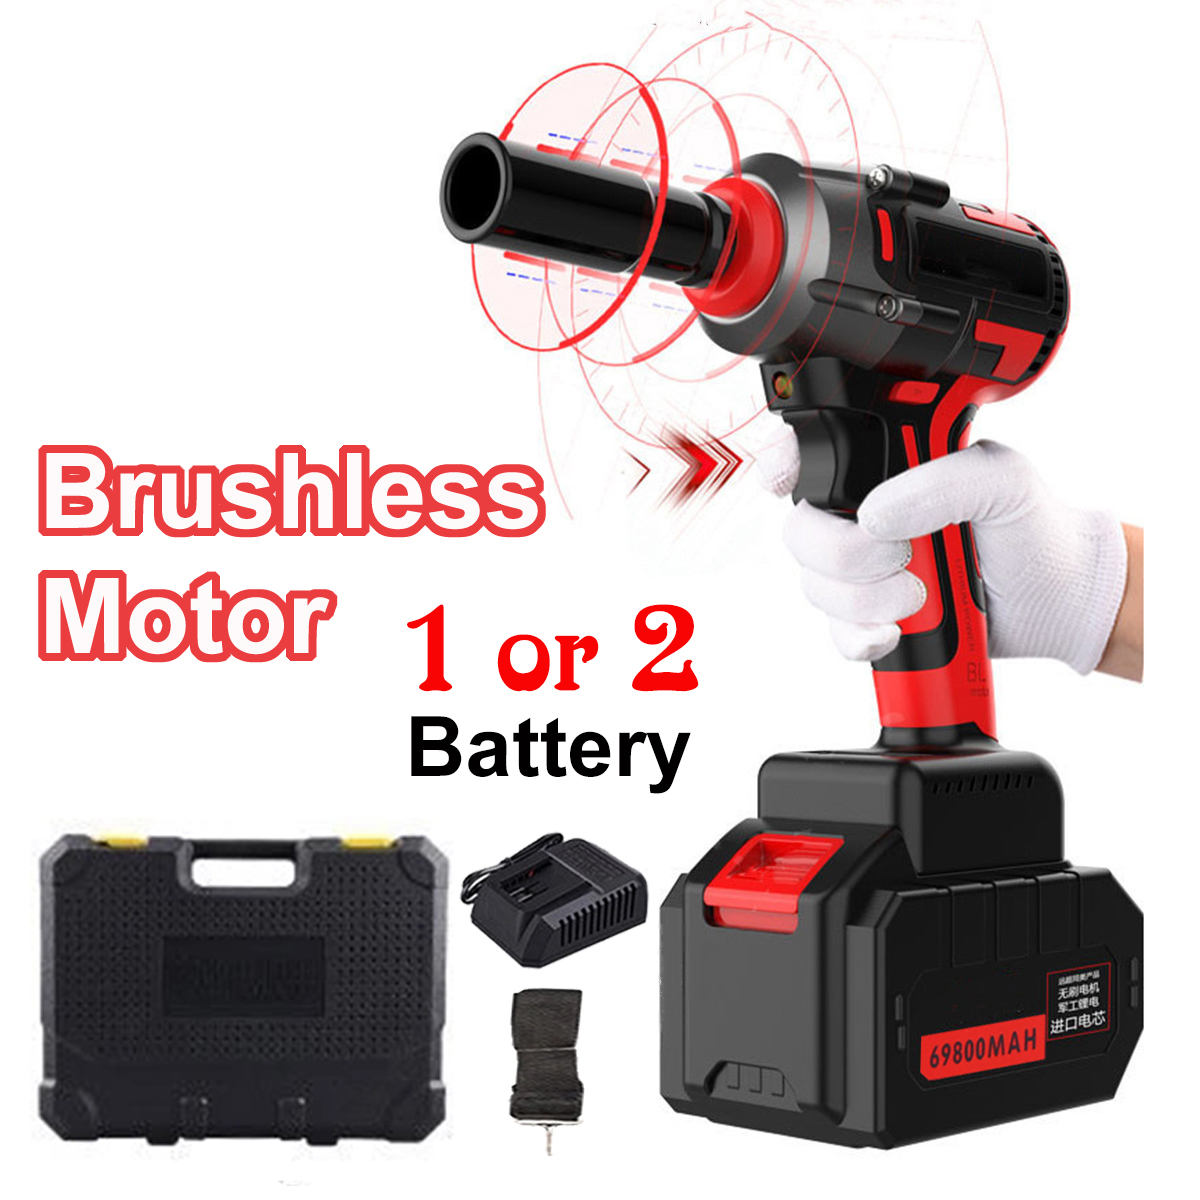 Brushless Electric Wrench Impact Socket Wrench 69800mAh Li Battery 600N.m Torque Impact Wrench 220v Brushless Car Electric Tools